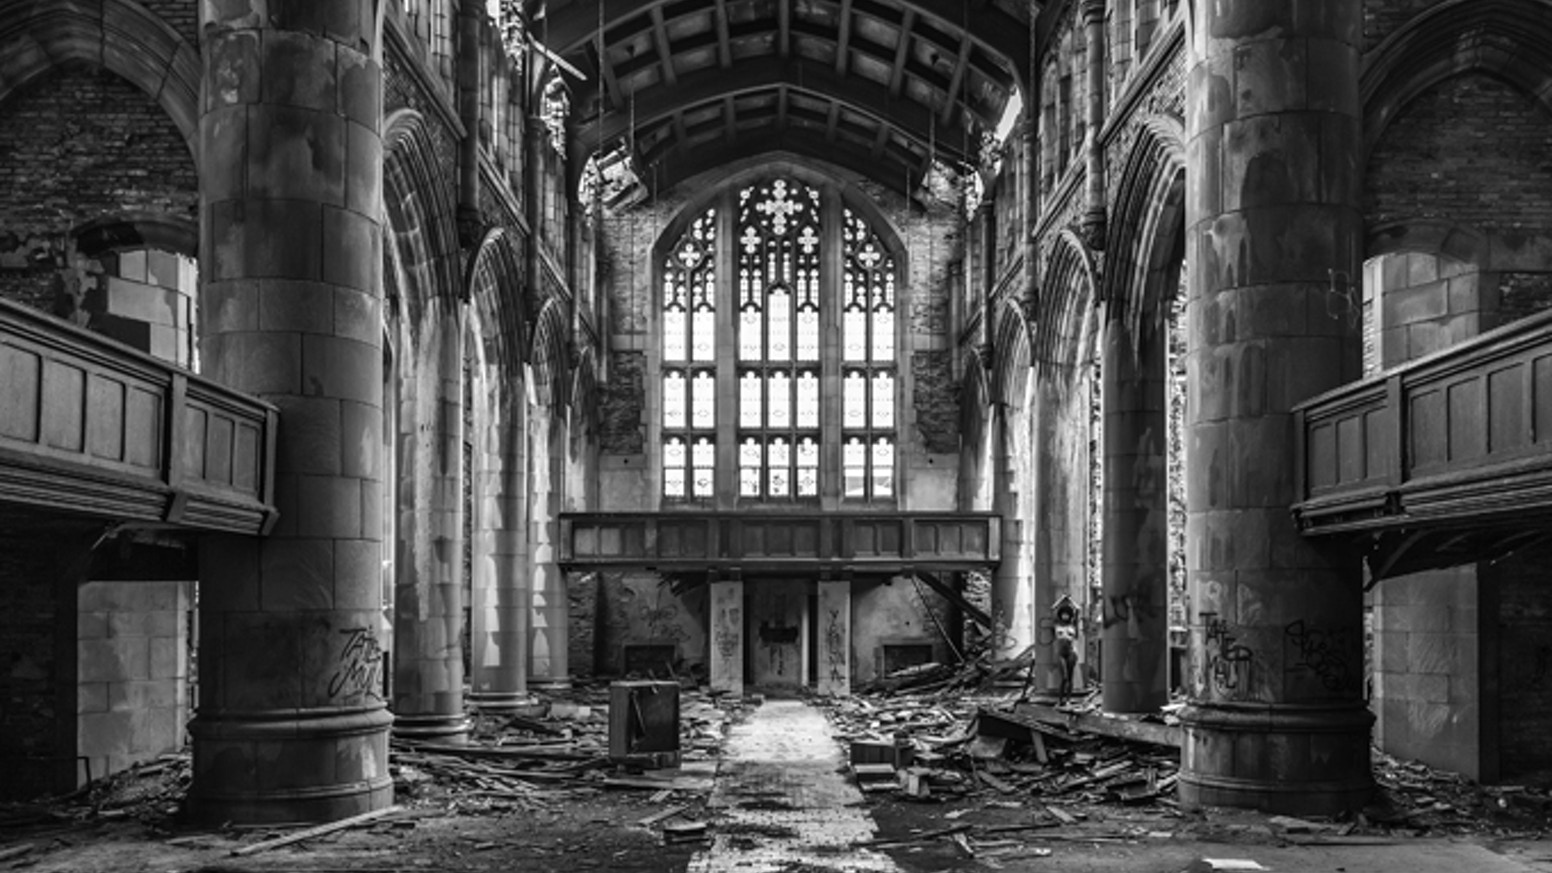 A fine art photography project that delves into studies of natural beauty in contrast with man-made decay.